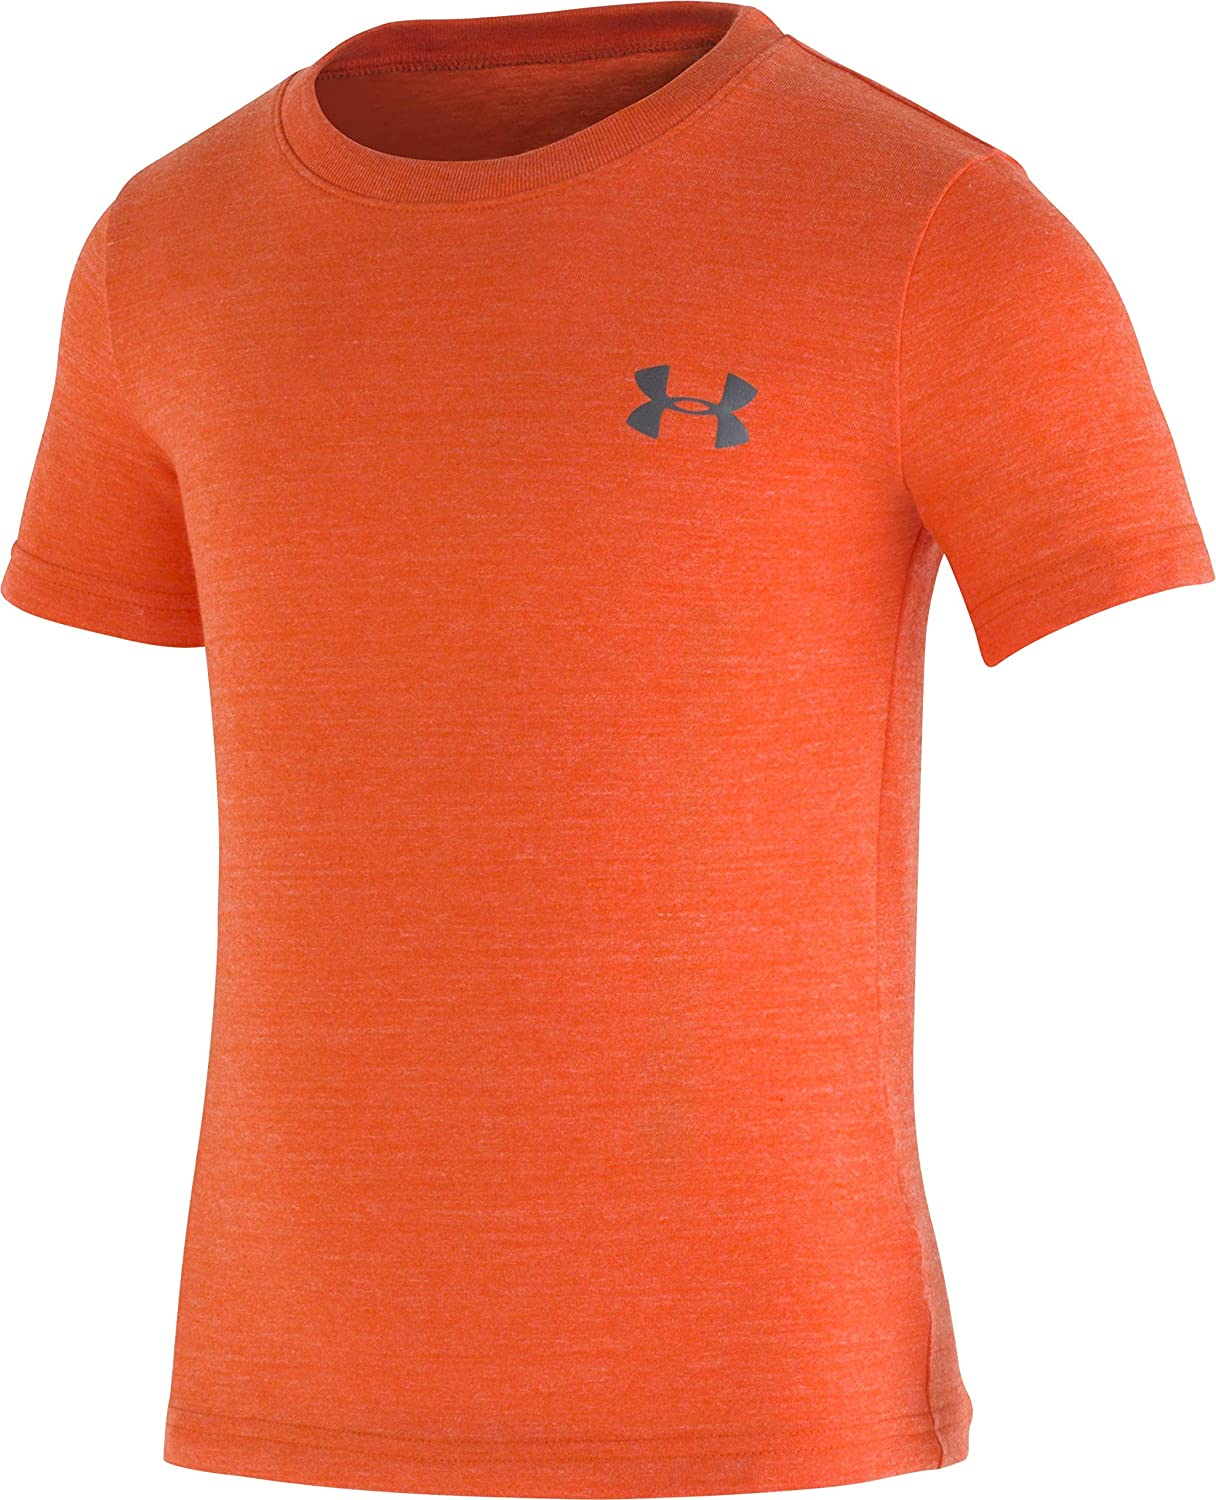 Under Armour Boys Triblend T-Shirt